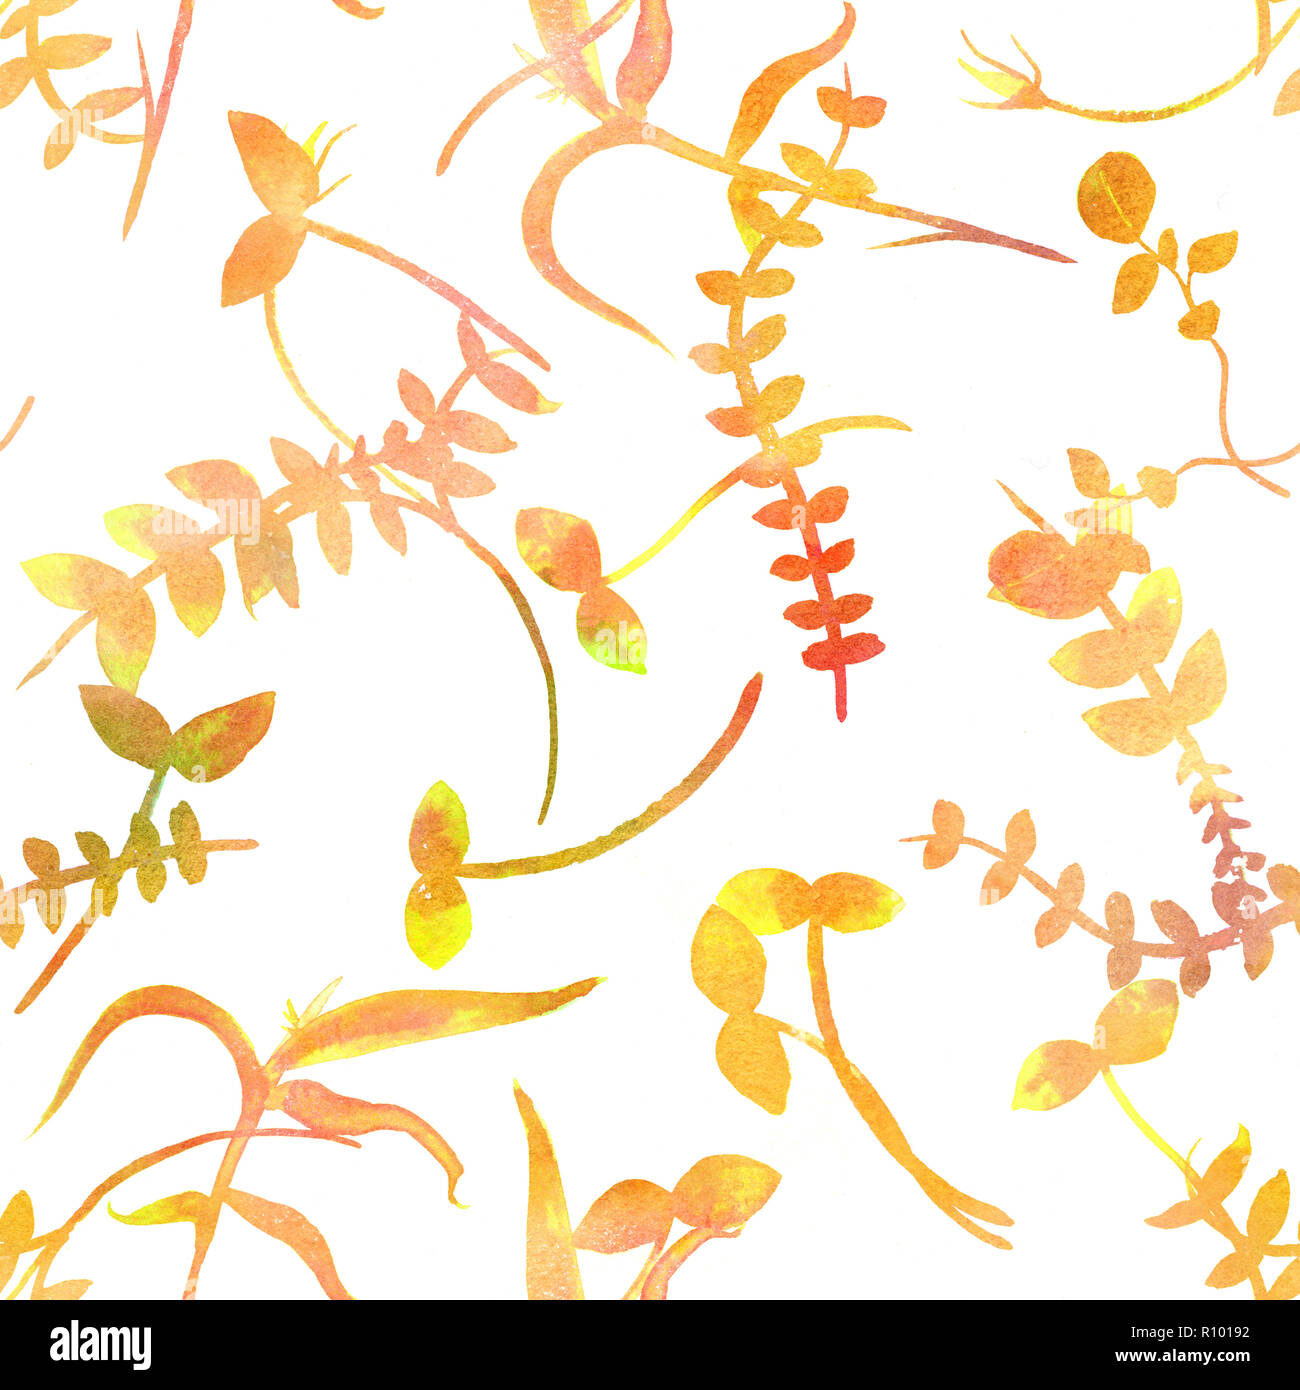 An autumn seamless pattern with yellow watercolor plants, branches and leaves, a golden fall repeat print - Stock Image